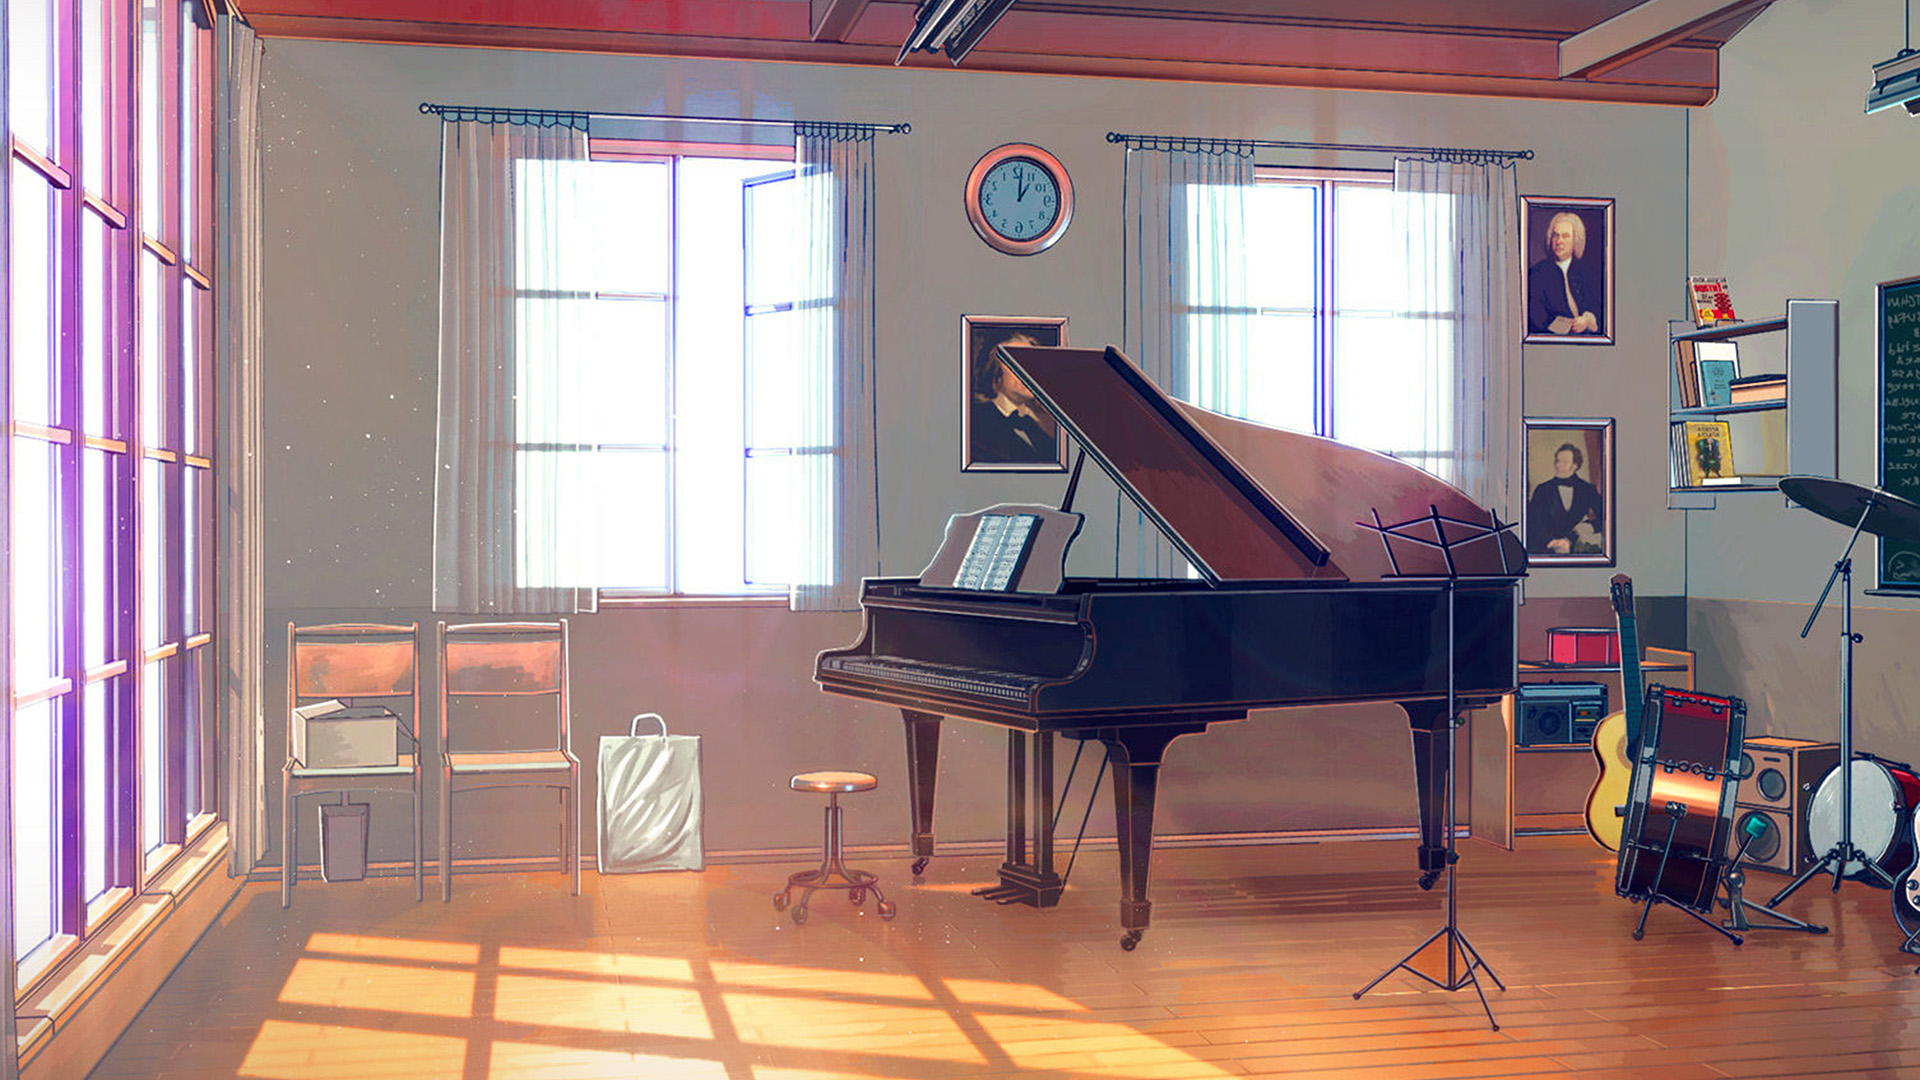 Iphone 4 Winter Wallpaper Aw49 Arseniy Chebynkin Music Room Piano Illustration Art